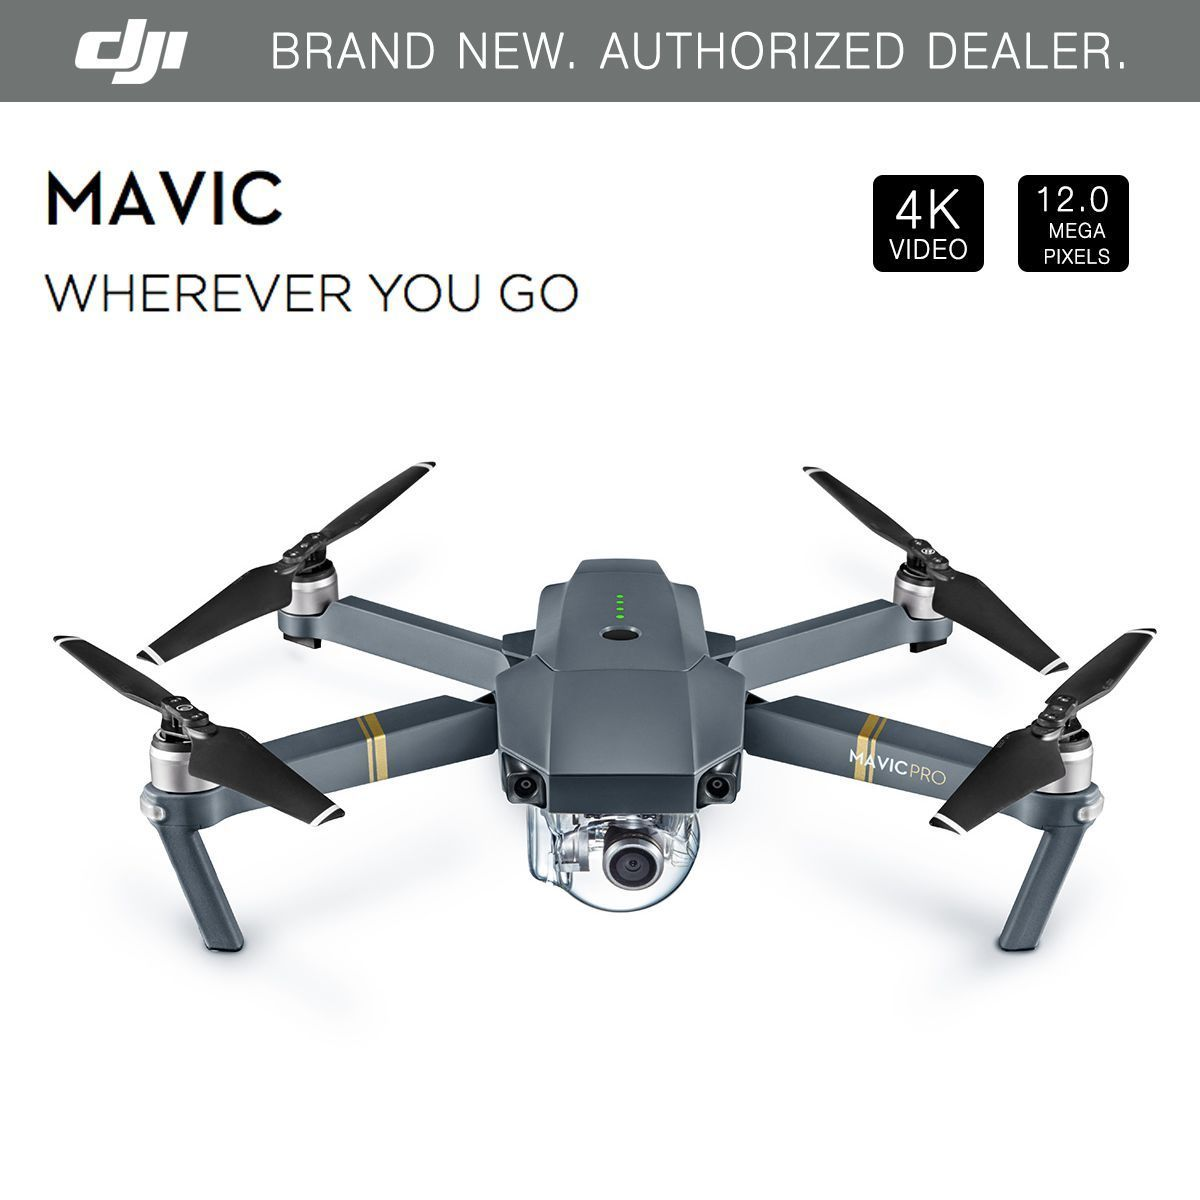 dji mavic pro folding drone - 4k stabilized camera, active track